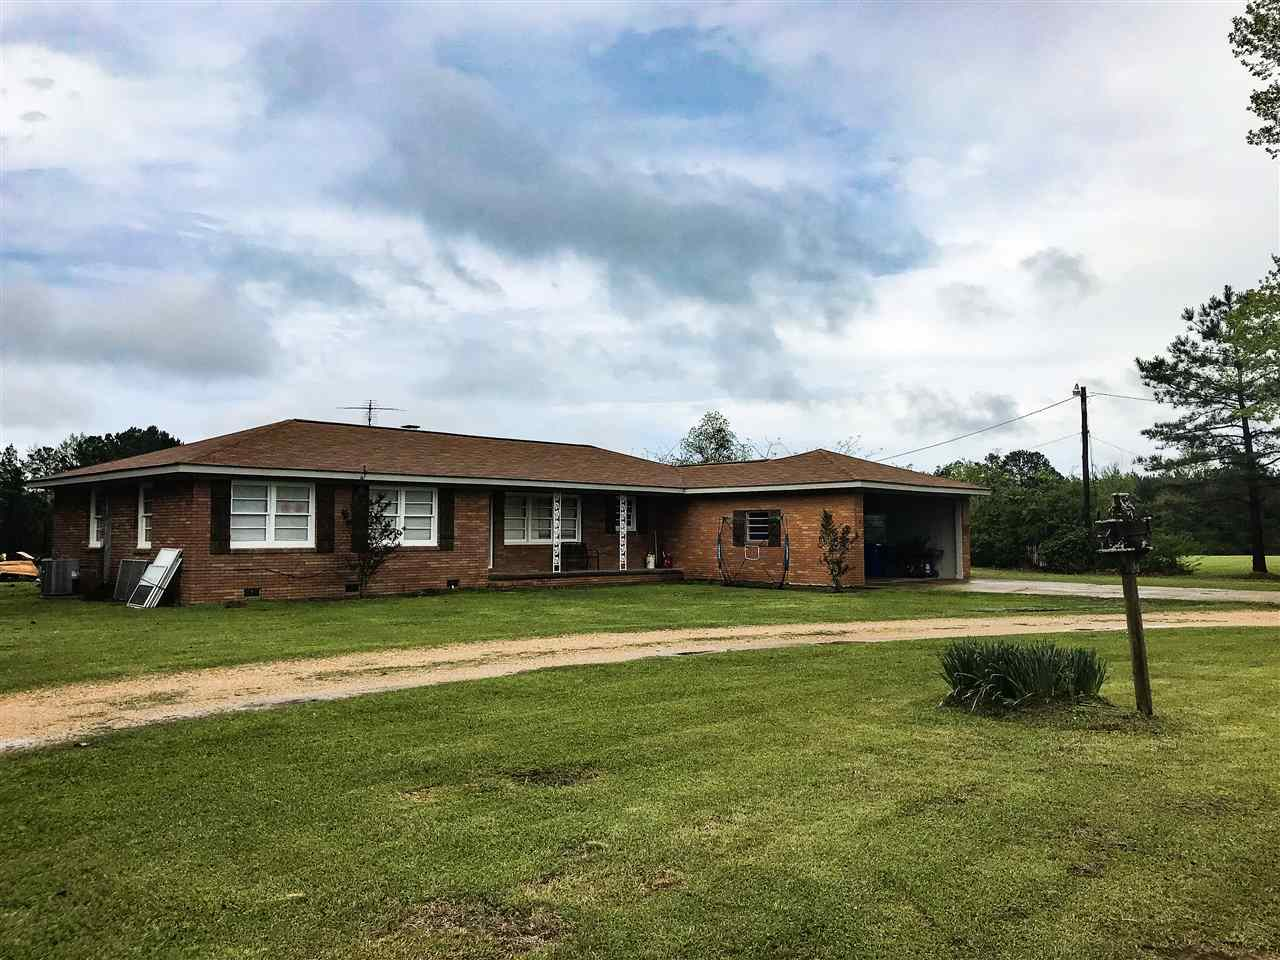 Photo of 448 NEW HOPE RD  Mt Olive  MS